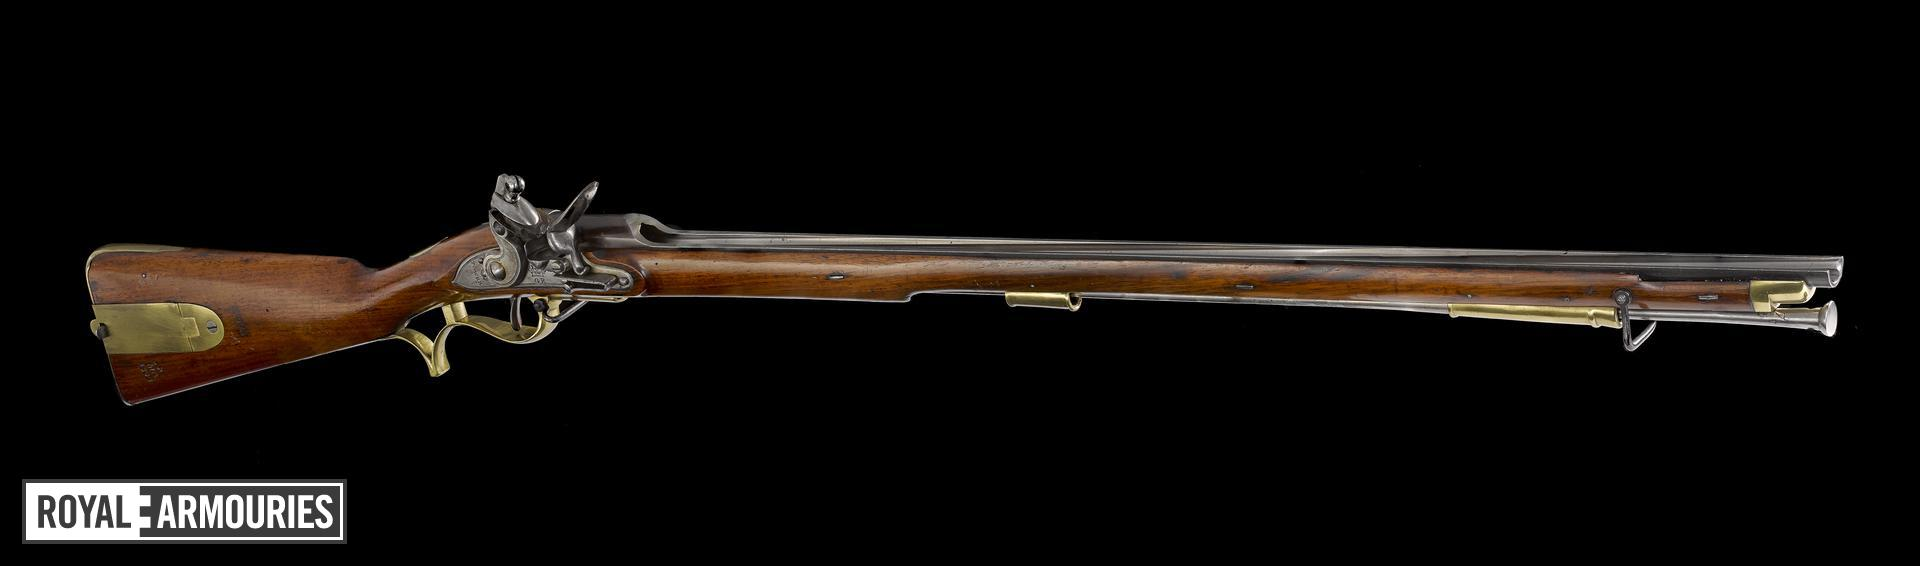 'Baker' flintlock muzzle-loading rifle, of carbine bore, about 1810, England (XII.2443)